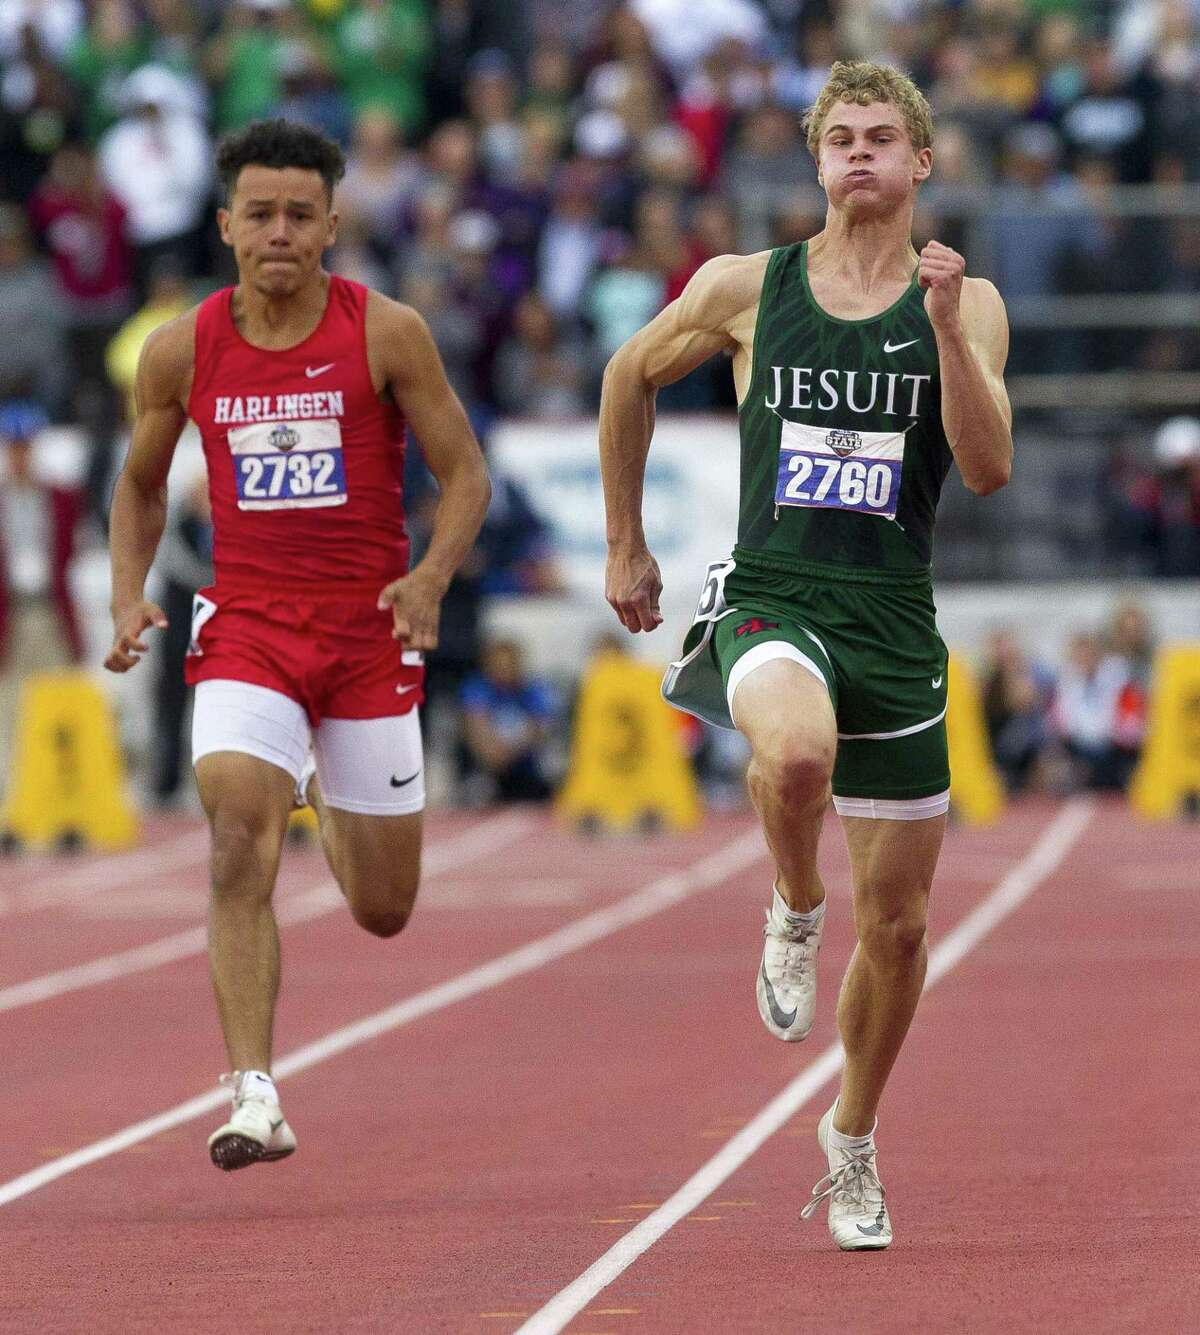 Strake Jesuit senior Matthew Boling's 10.13-second 100-meter dash. set Saturday, is a national record among high school events.